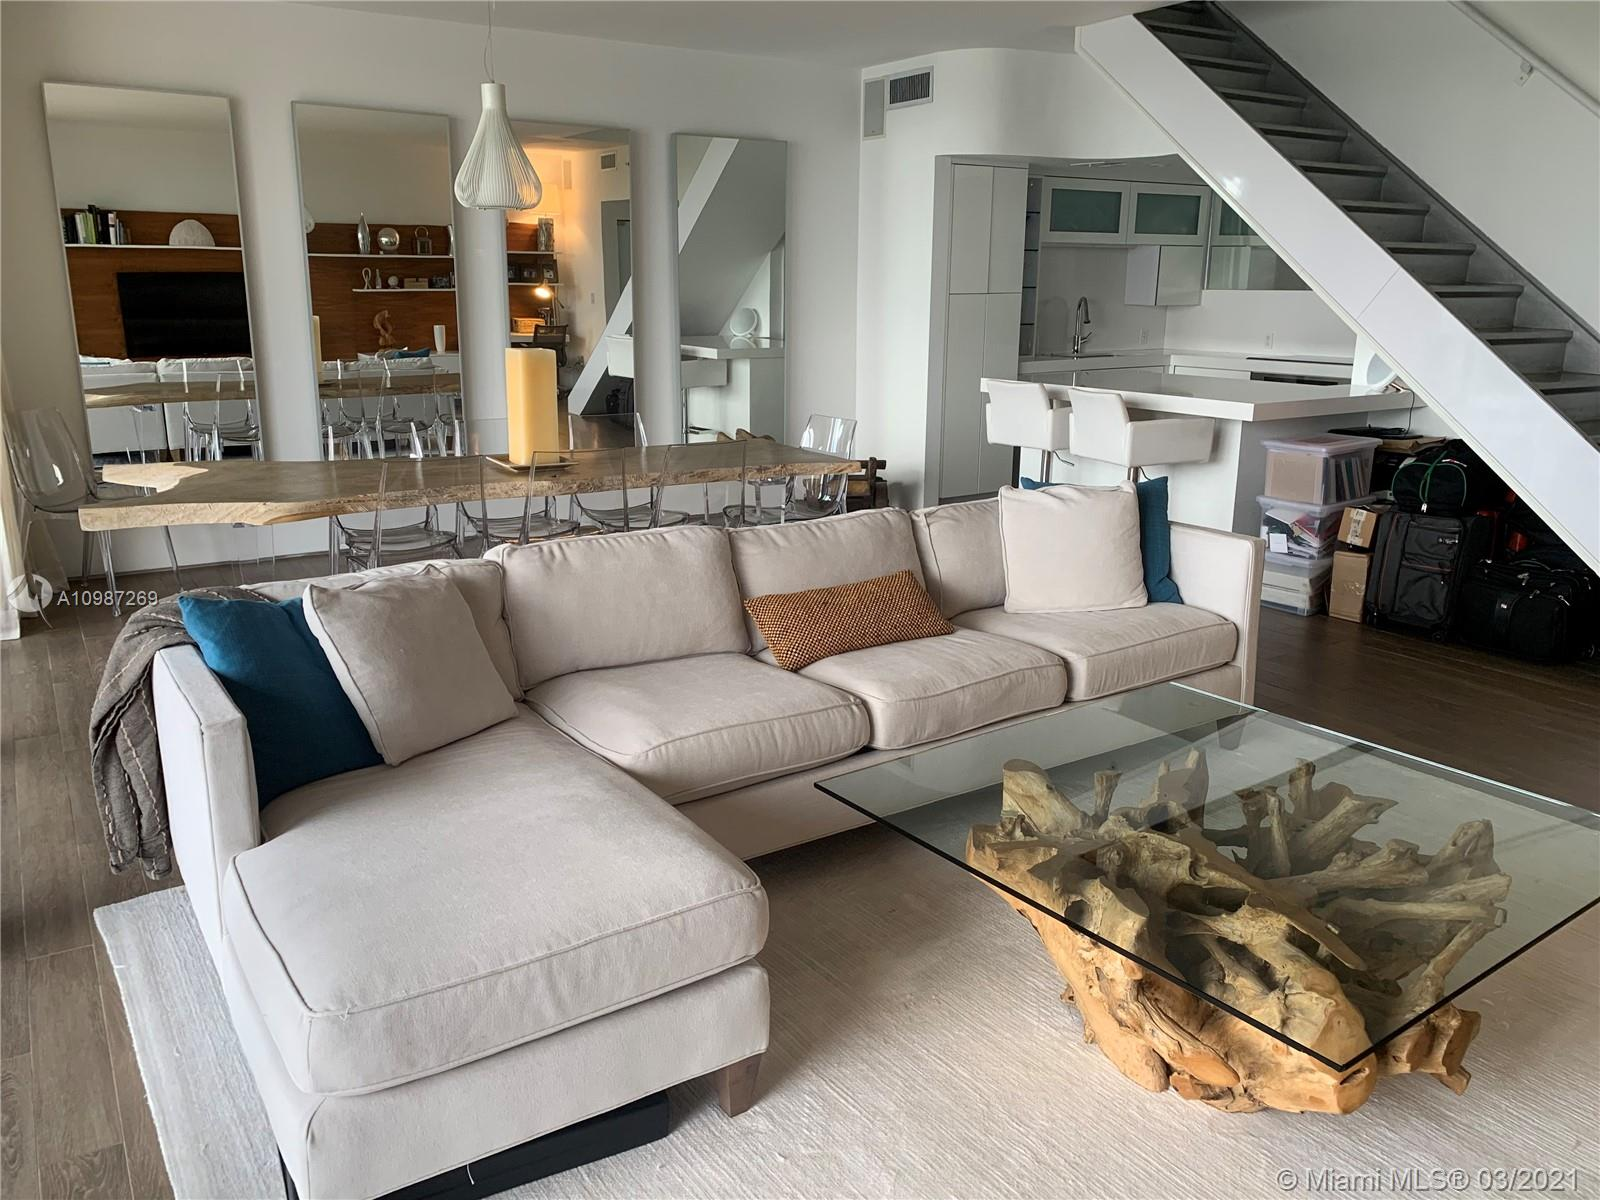 Unique two story corner unit with a million dollar view located in one of the most exclusive areas of Miami and Miami Beach! 9.5 'glass walls that open to huge balconies on each level. The master bedroom and bathroom are on the upper level. Beautiful view of downtown Miami. Unit is located on the water overlooking the beautiful dog park and intercoastal waterway. Hardwood floors downstairs and polished concrete floors upstairs in the bedroom. Lots of mirrors reflecting the incredible view. Stunning views and even the hallway of the Unit has floor to ceiling glass walls. The kitchen is modern with all white cabinets.